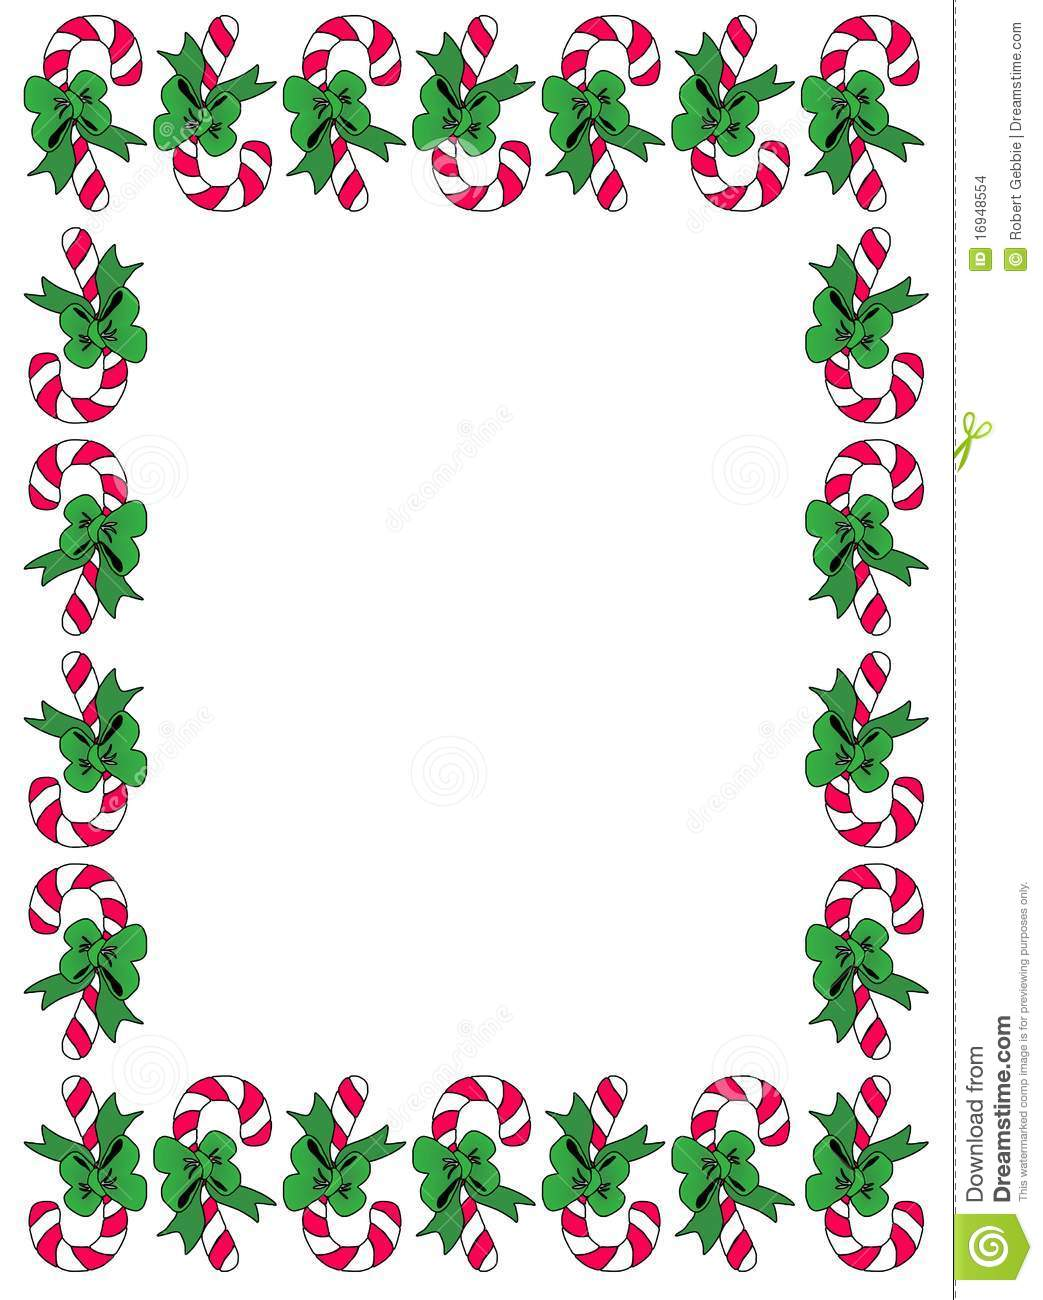 Peppermint Candycane Borders With Pretty Green Bows In A Frame Format